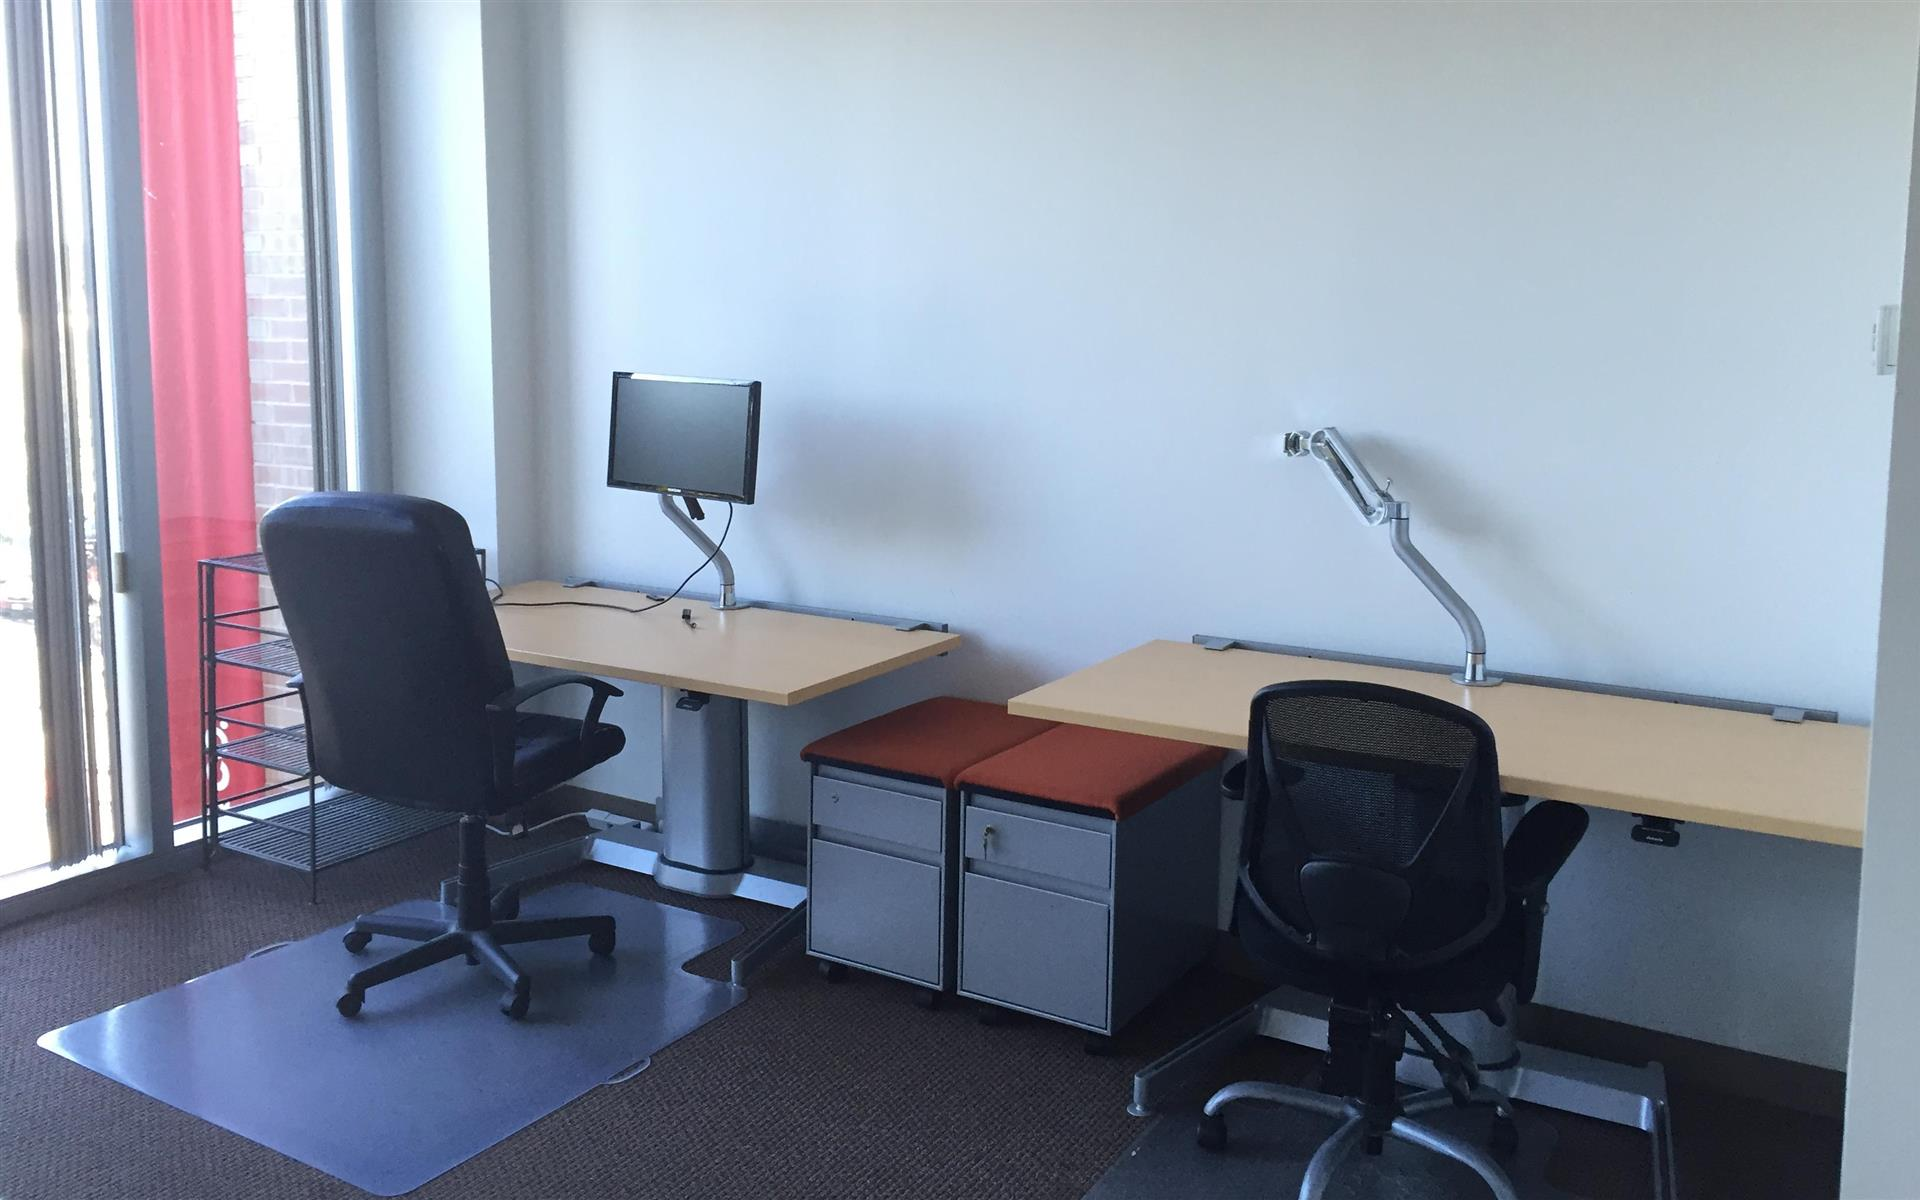 Echo & Co. - Dedicated Desk in Shared Workspace